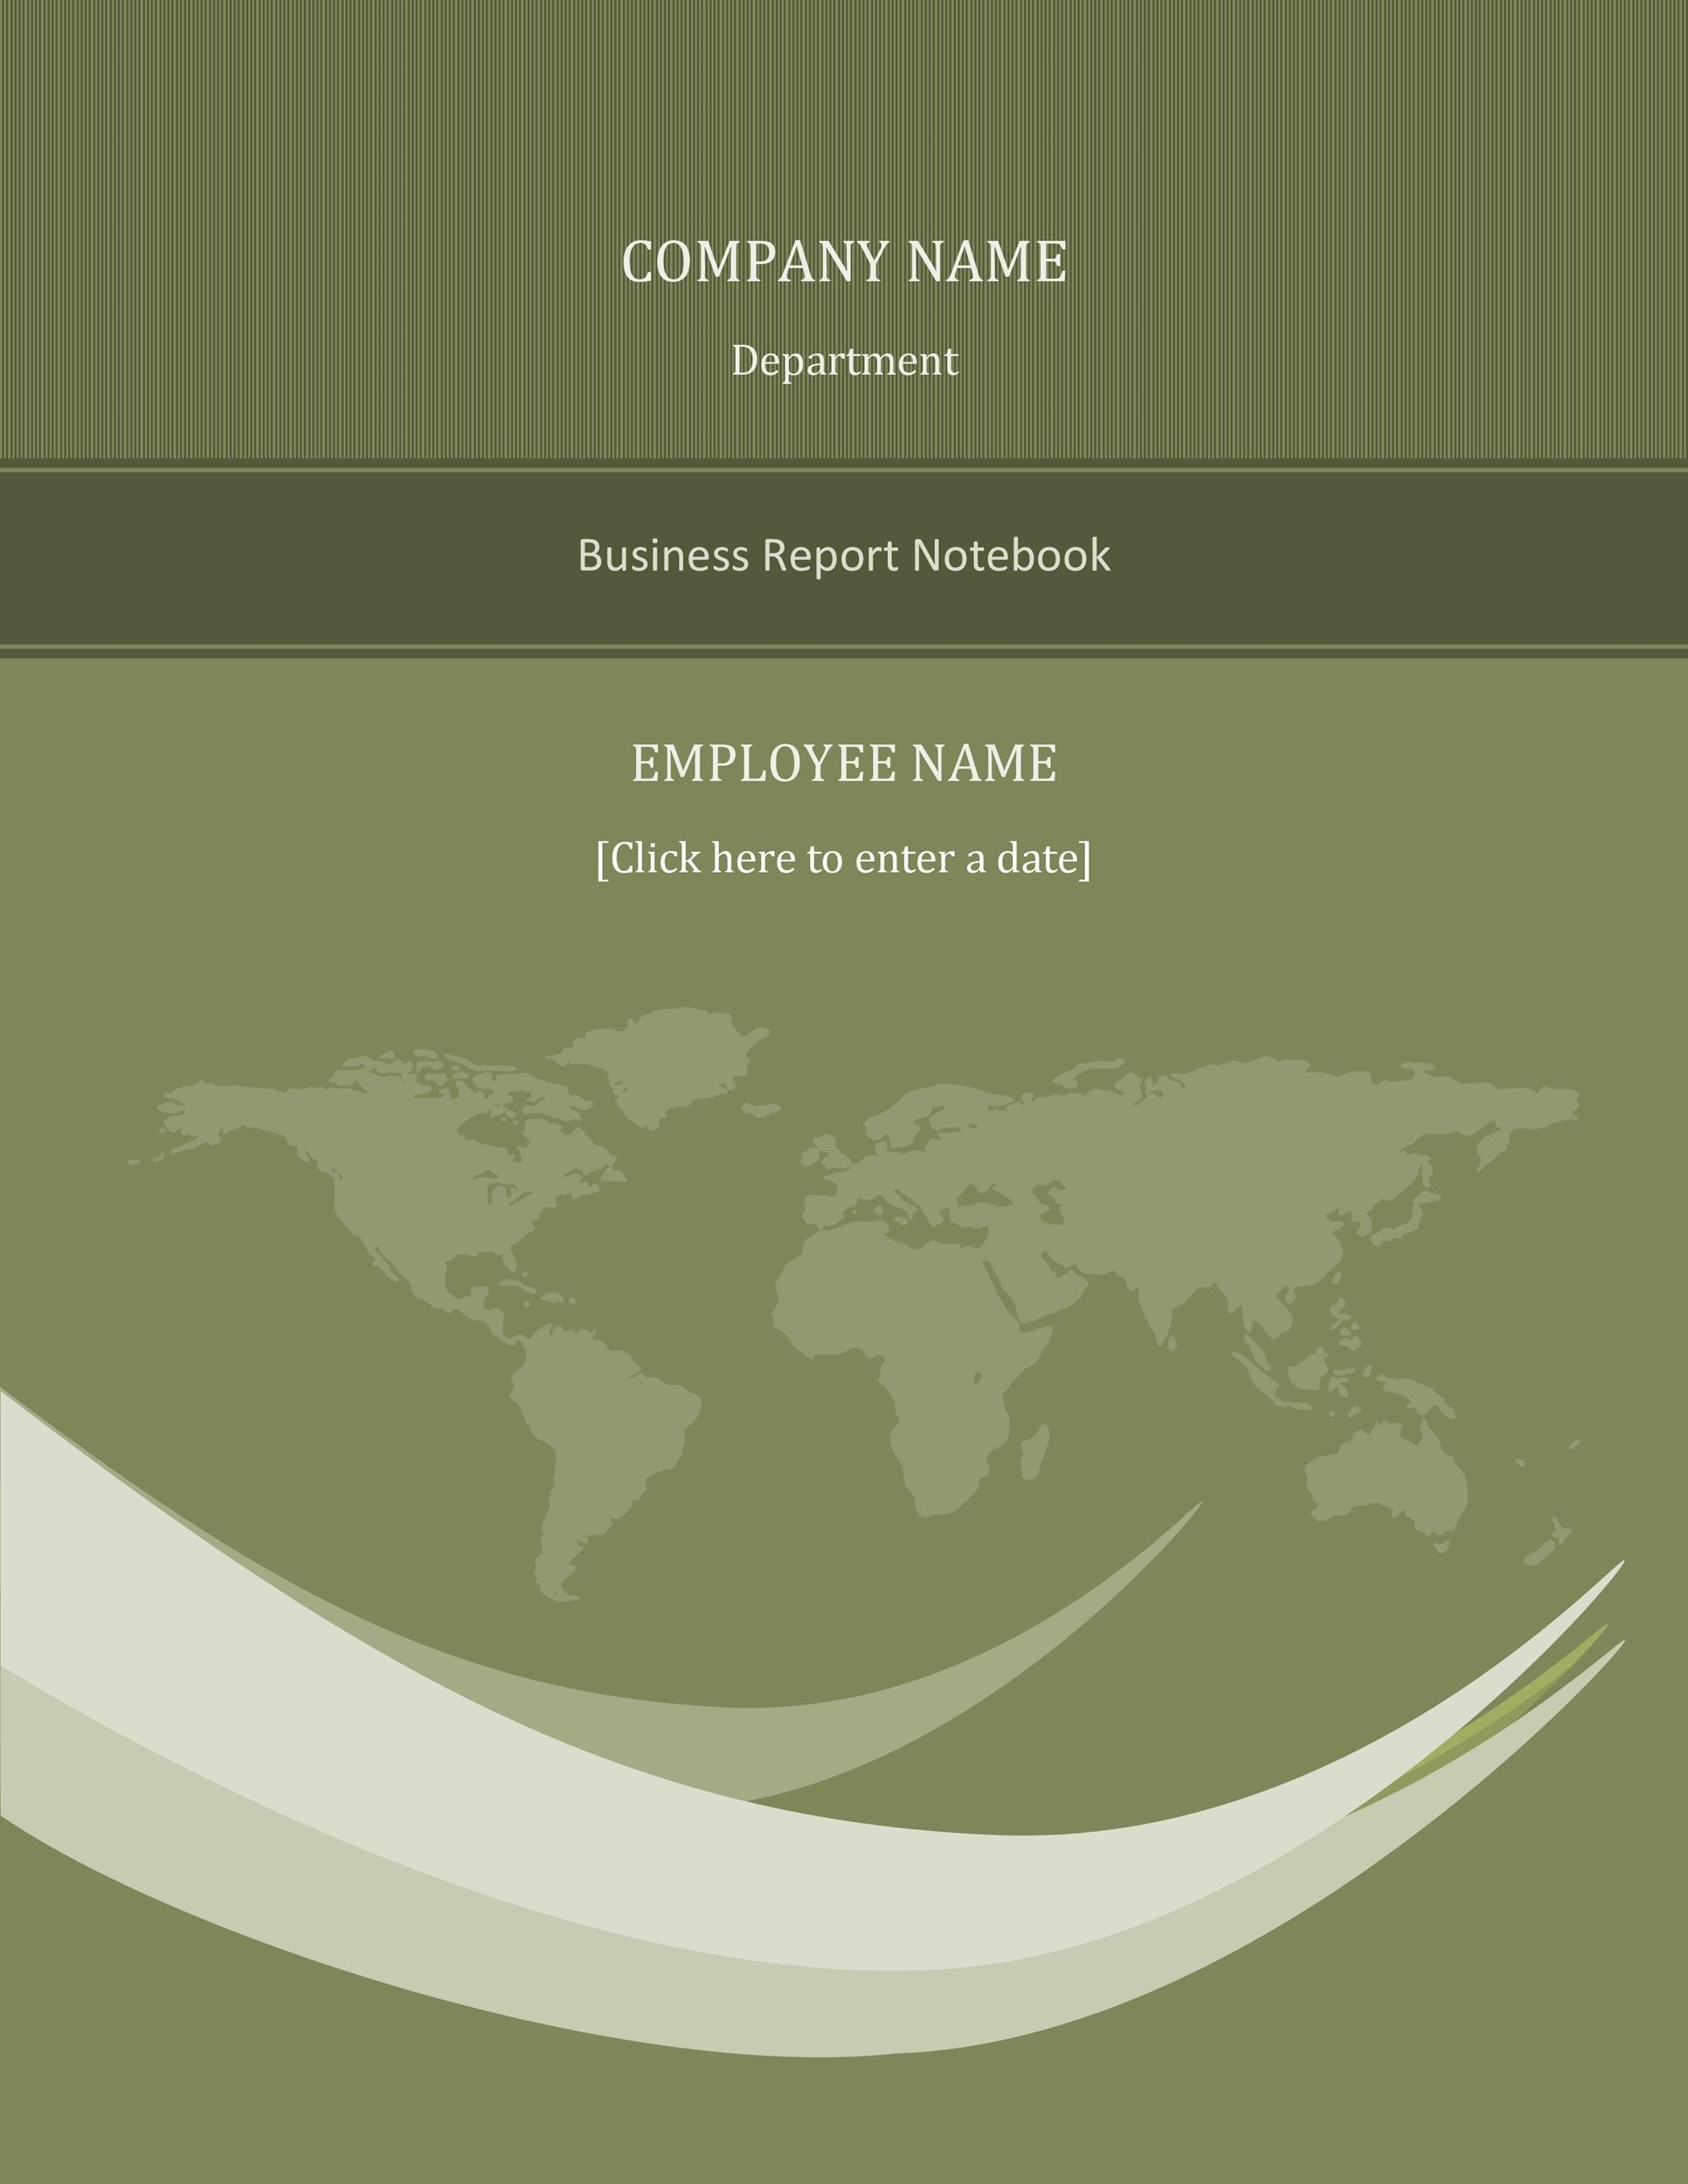 Free business report template 16